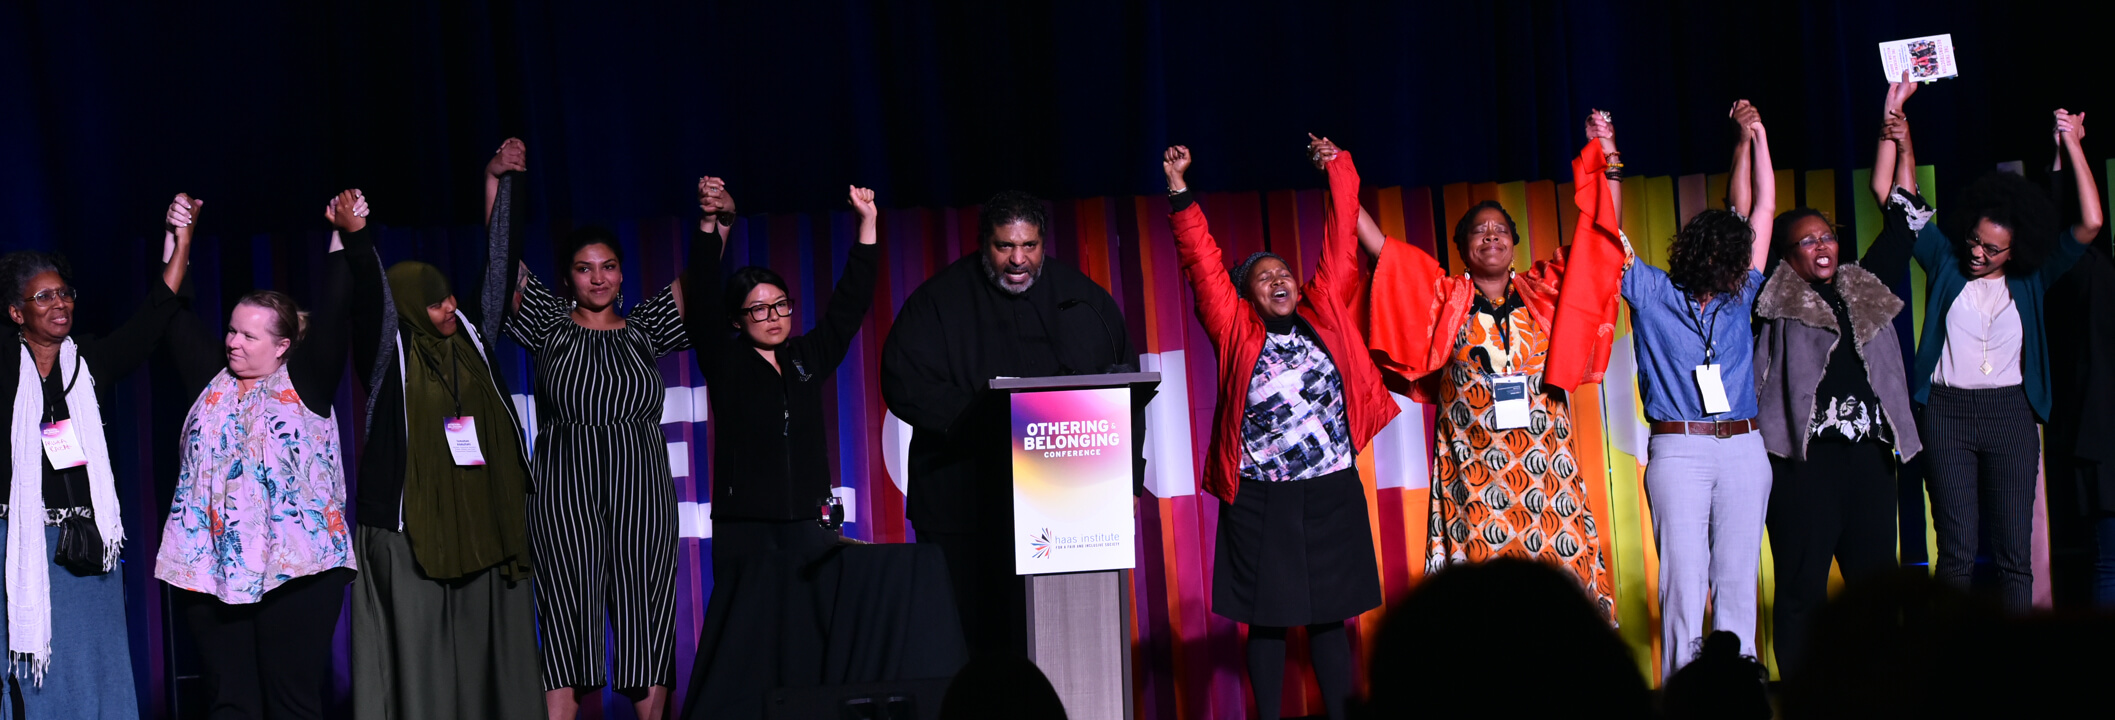 "Rev. William Barber II closes out the 2019 Othering & Belonging Conference with a call to the stage of all who have experienced being treated as ""other"" and and a call of action for all who want to move forward together towards belonging."